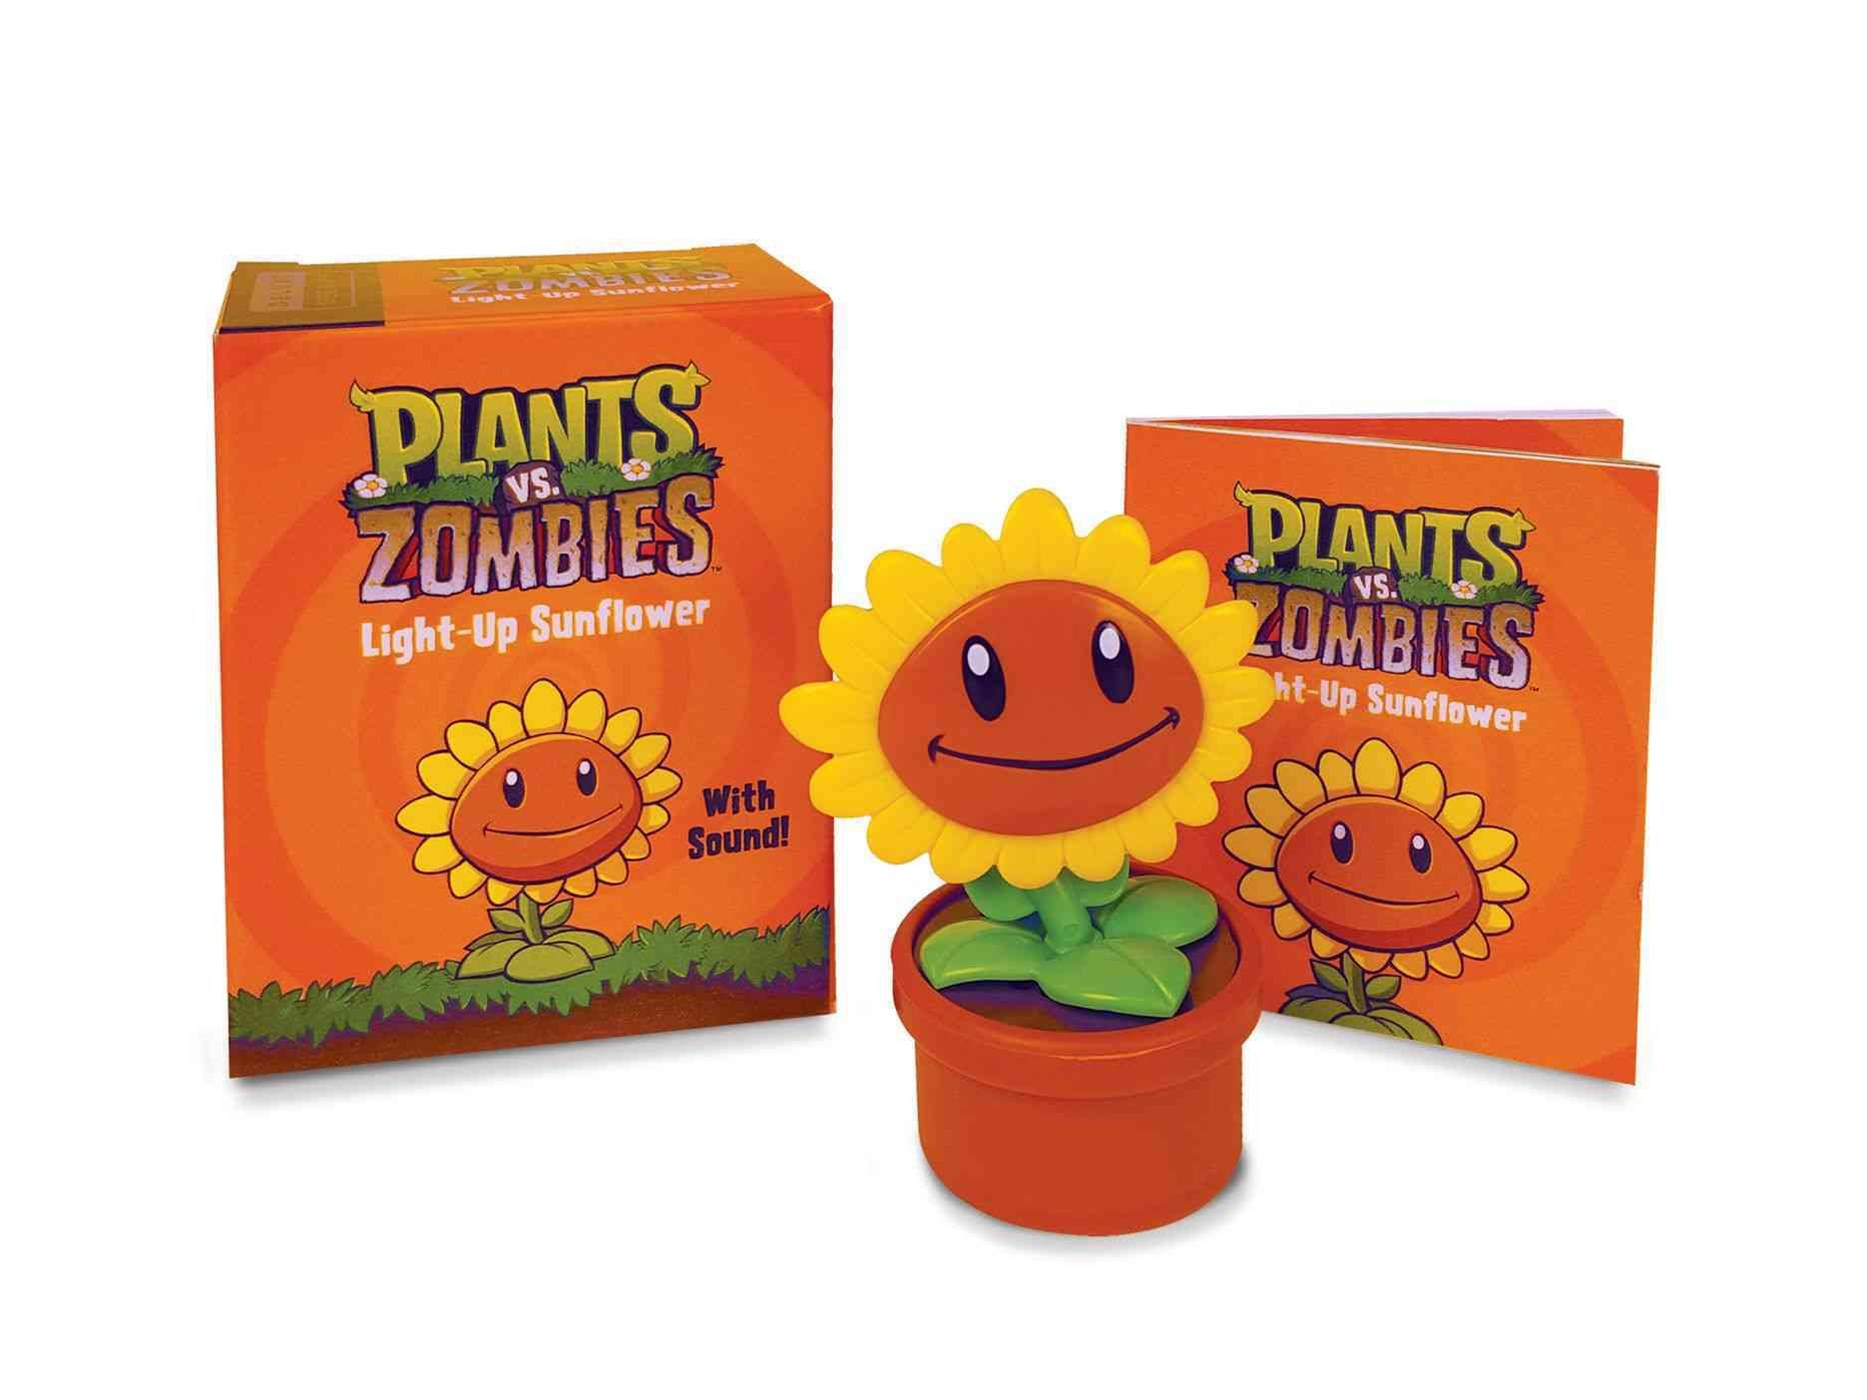 Plants vs. Zombies: Light-Up Sunflower